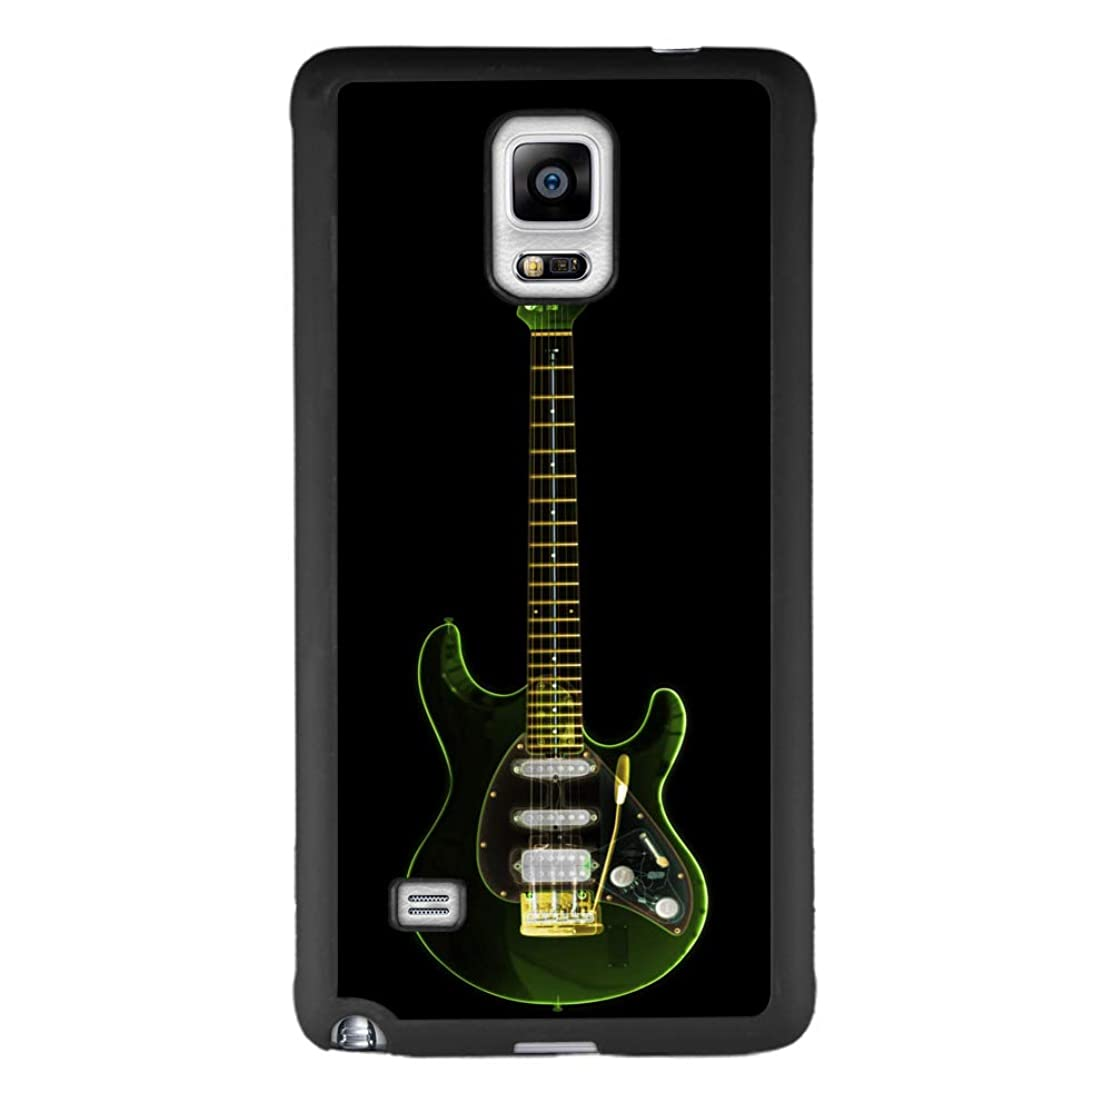 Samsung case for Samsung Galaxy Note 4 case Guitar Slim Soft and Hard Tire Shockproof Protective Phone Cover Case Slim Hybrid Shockproof Protective Case Anti-Scratch Cushion Bumper with Reinforced Cor